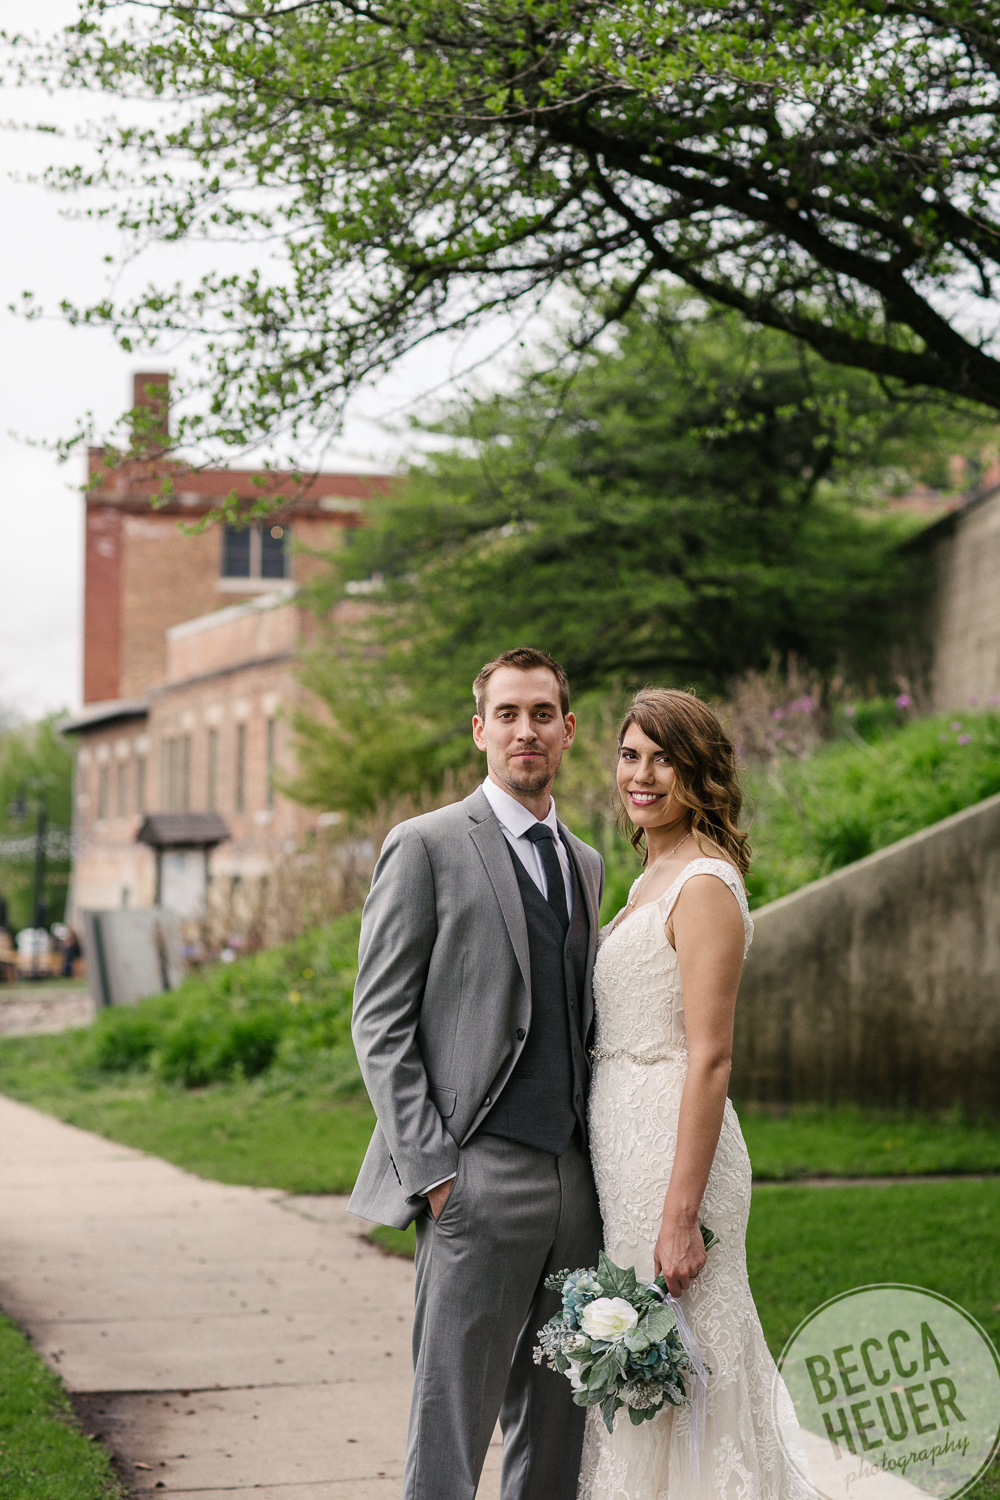 Allison and Joe_Wedding 051819 blog-119.jpg